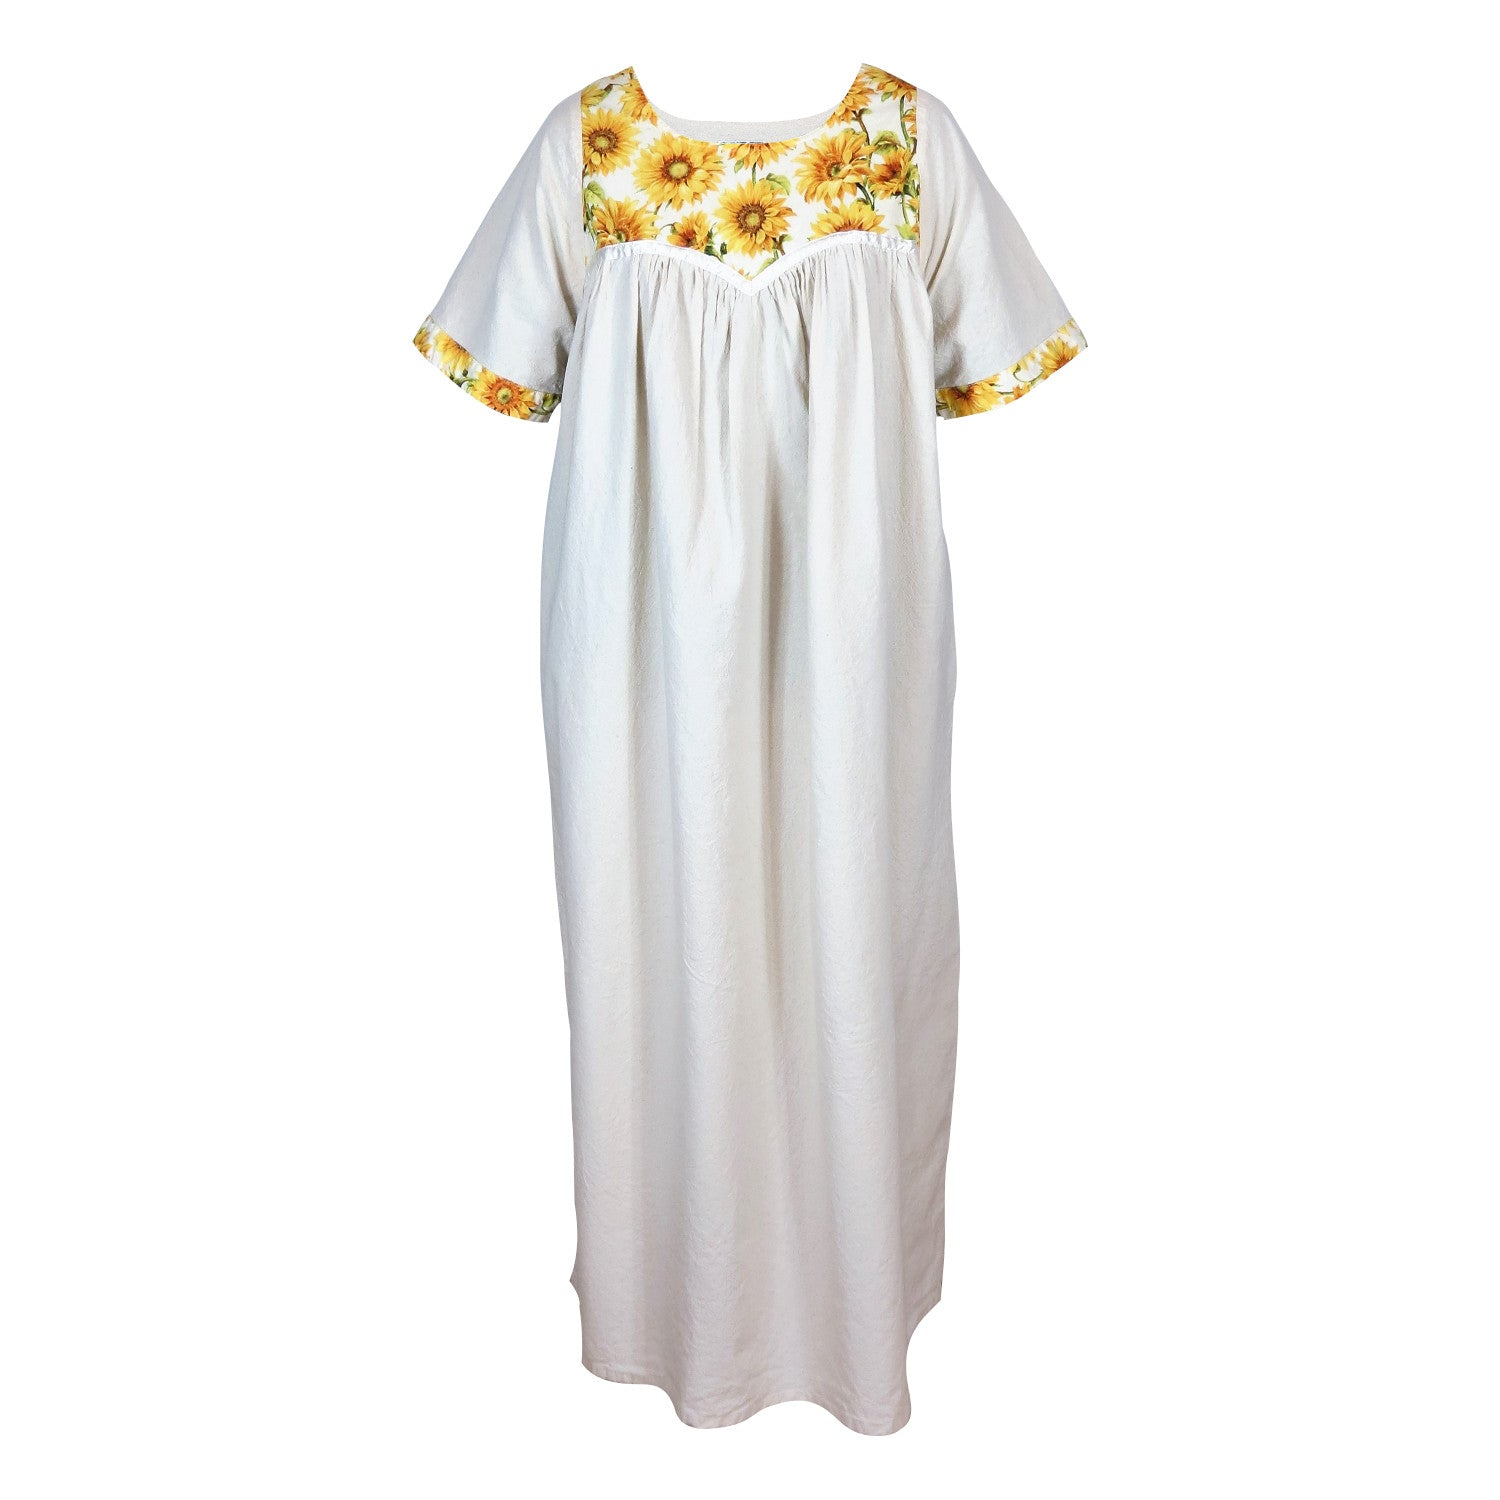 COTTON GOWN, SUNFLOWERS